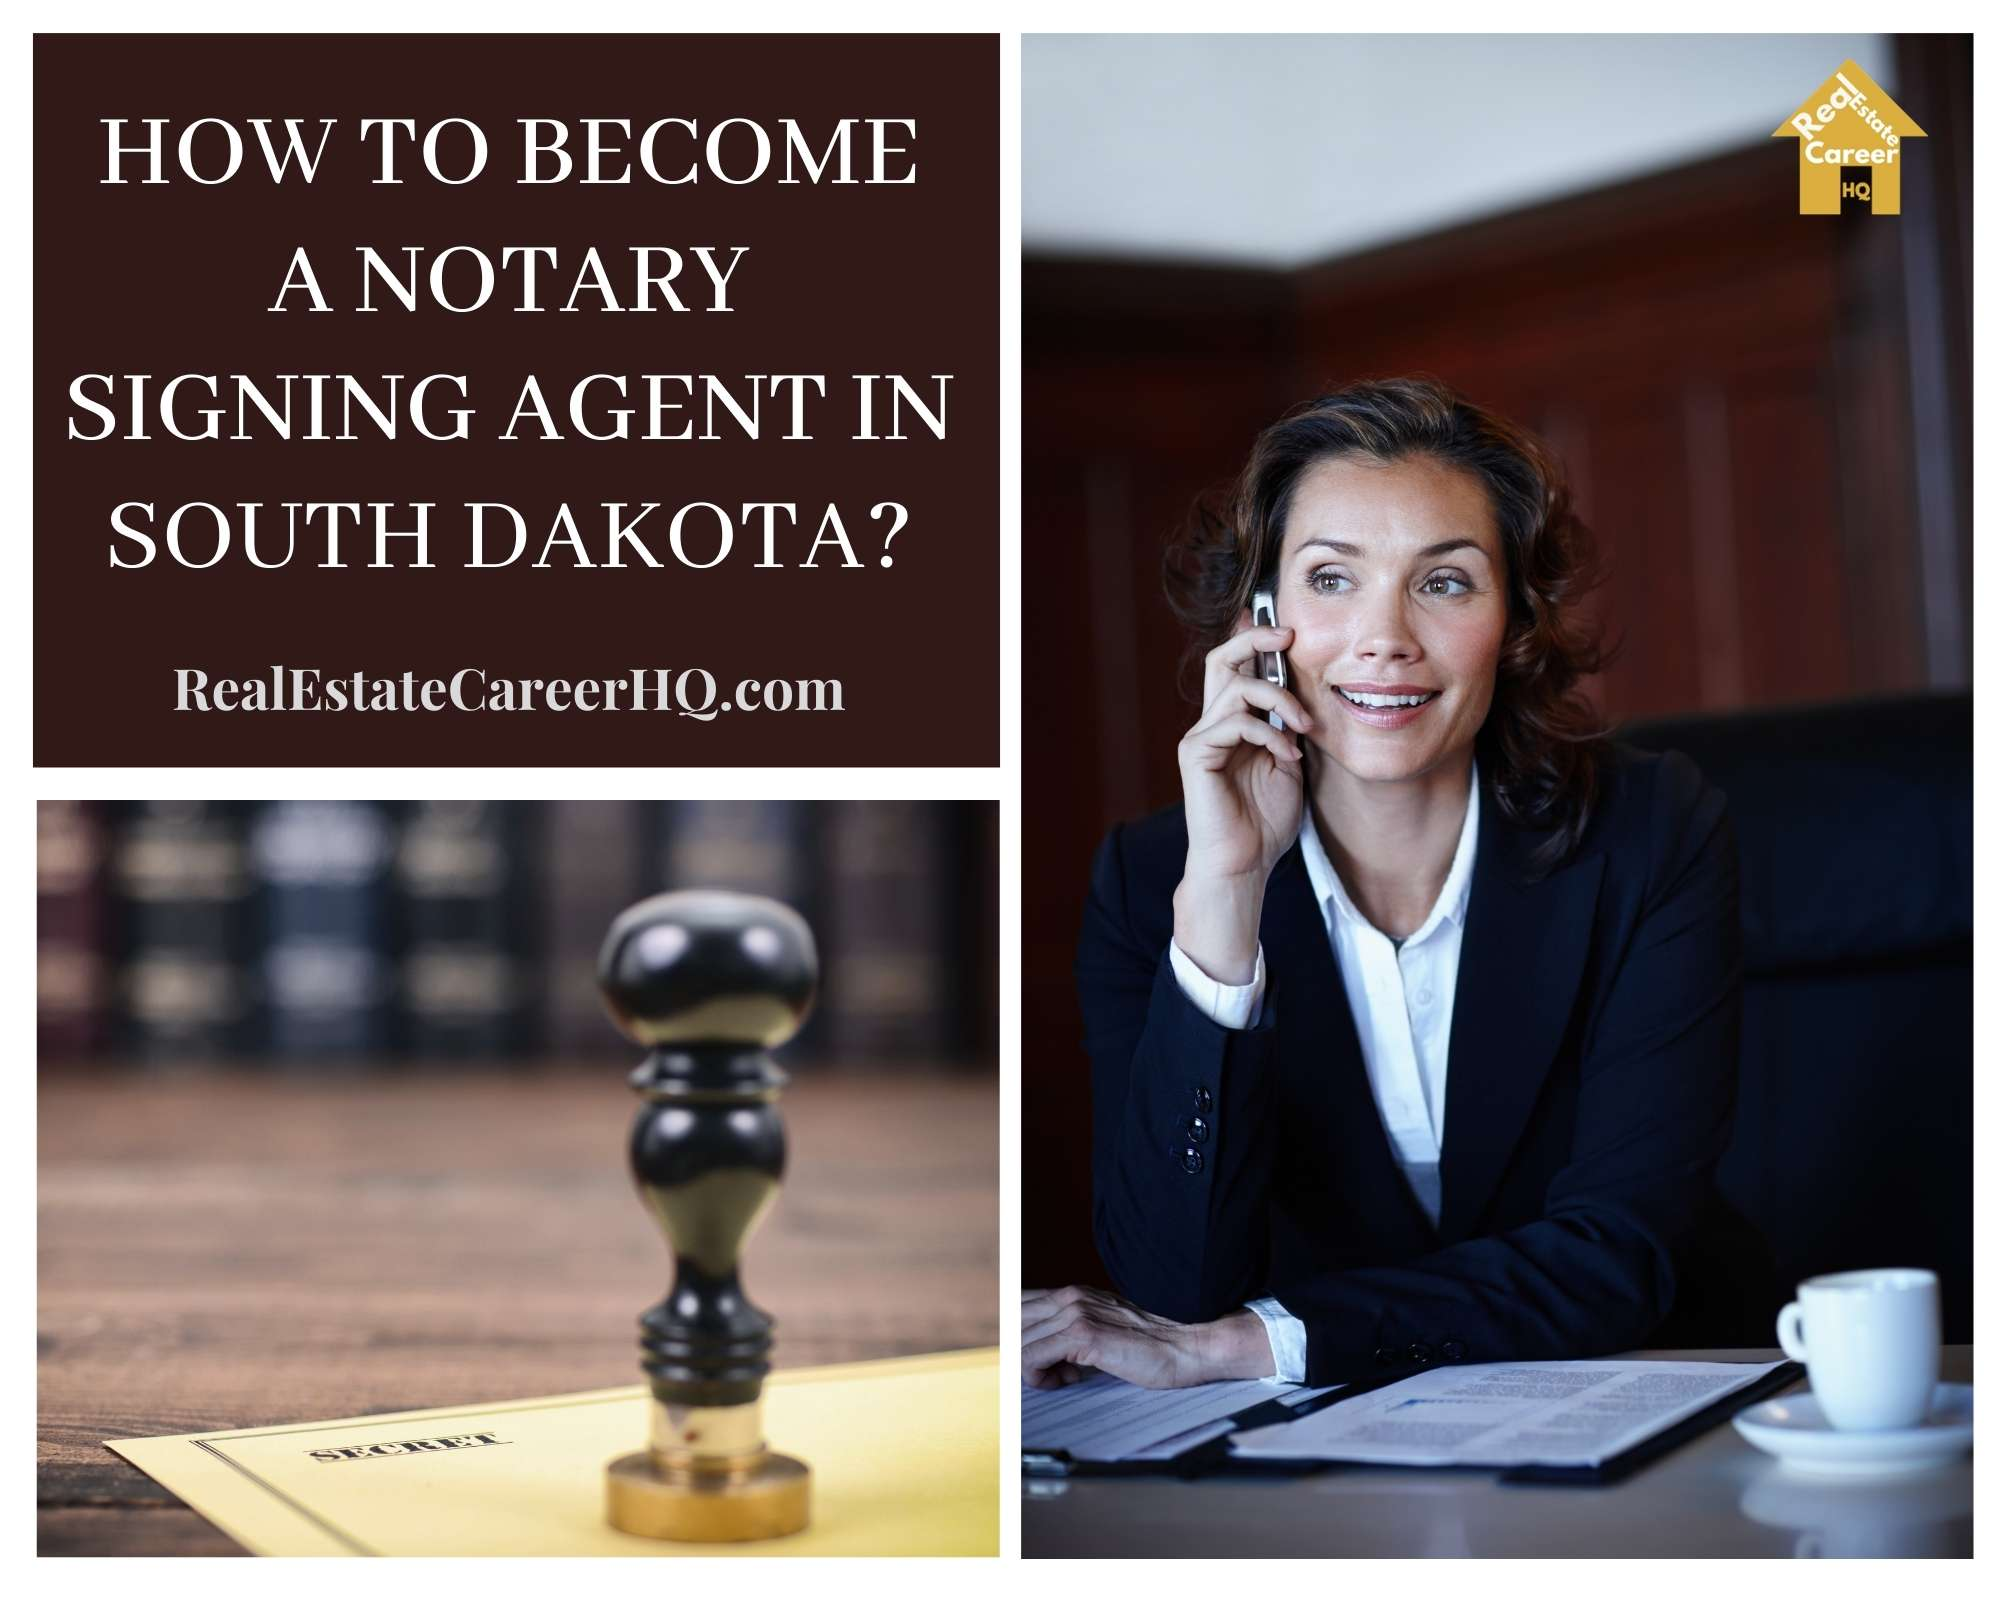 How to Become a Notary Signing Agent in South Dakota